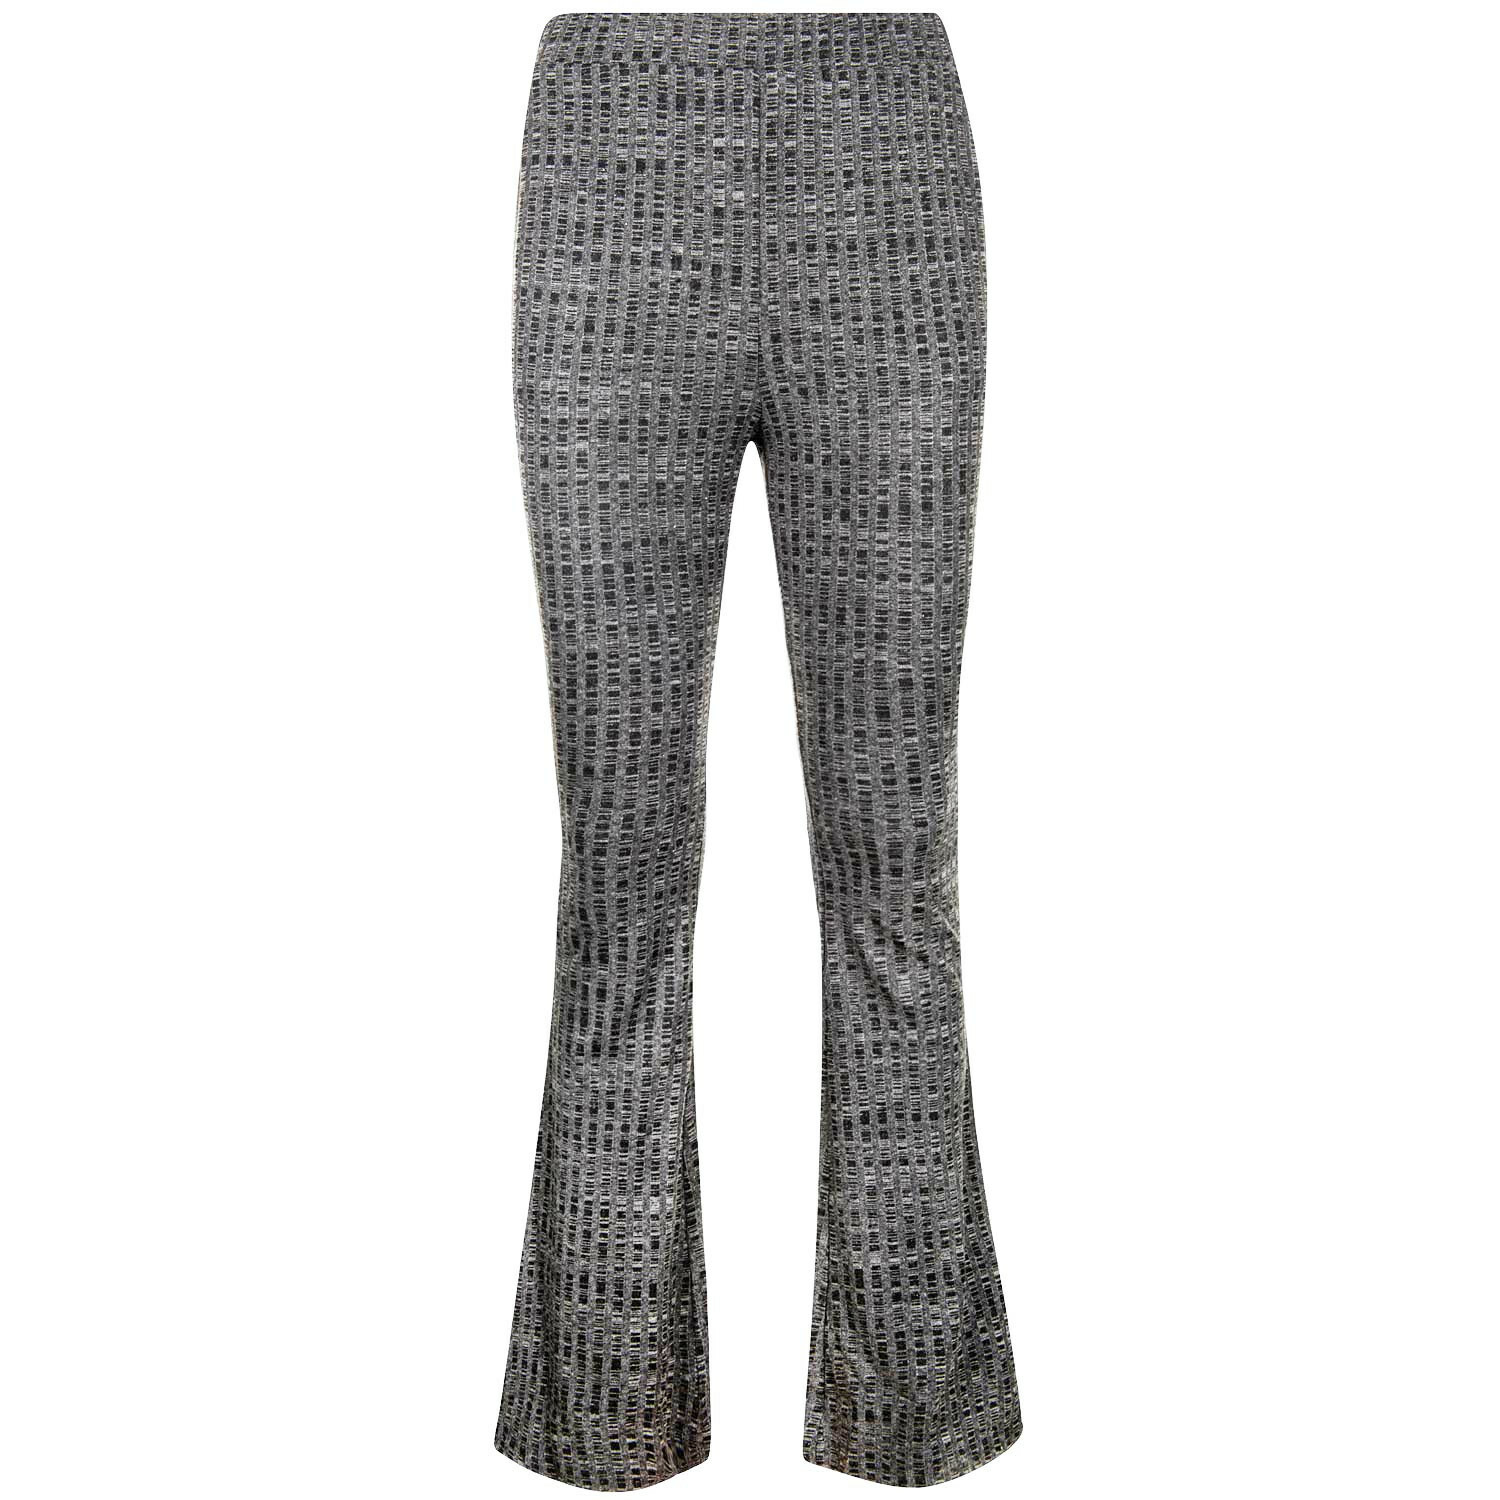 FLARED LIGHT GREY PANTS